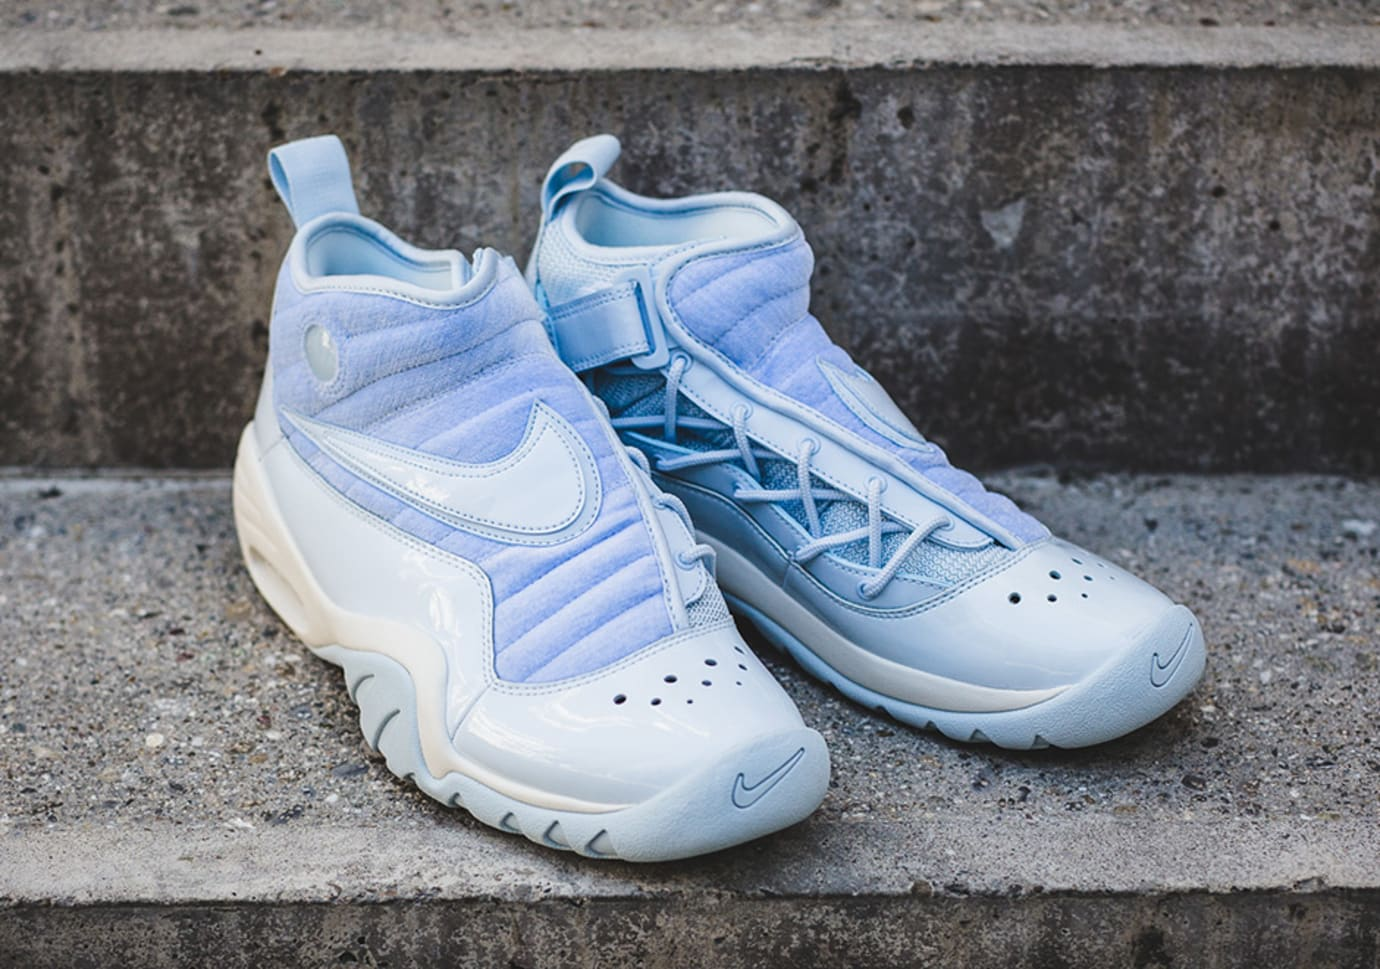 Nike Air Shake Ndestrukt Easter Blue Release Date Front 943020-400